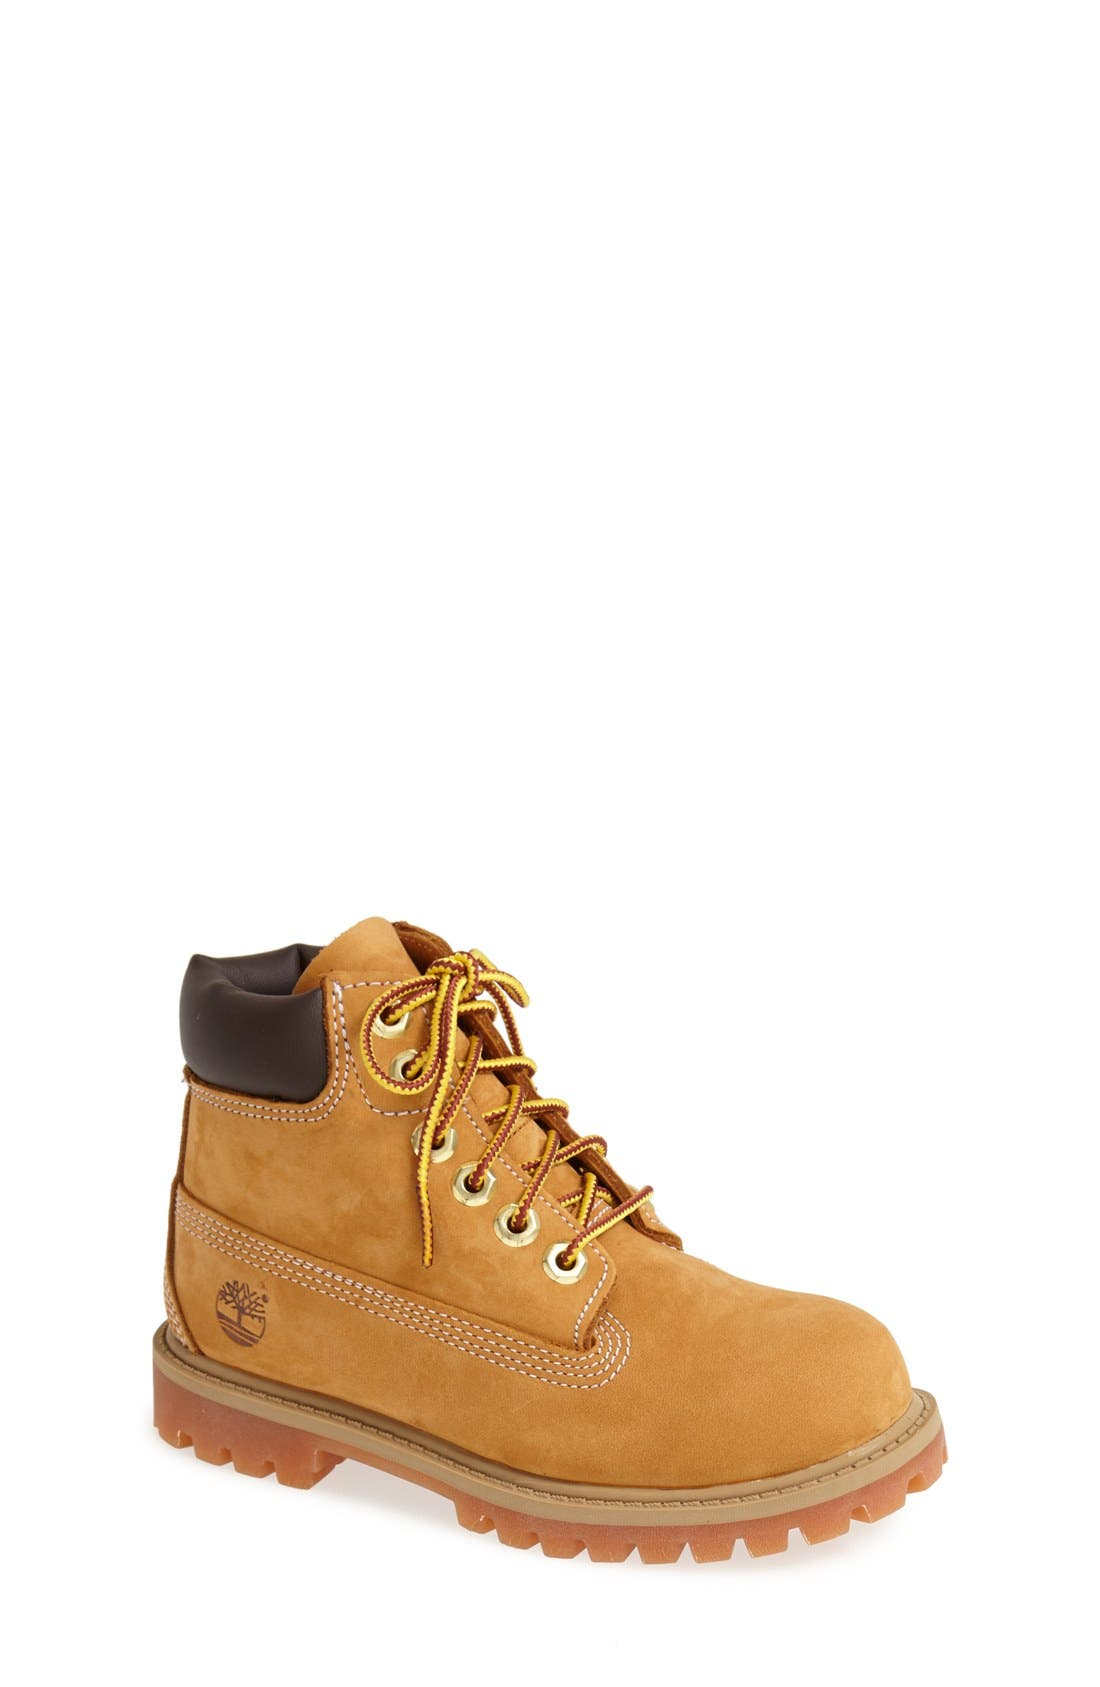 Timberland '6 Inch Premium' Waterproof Boot (Toddler, Little Kid & Big Kid)